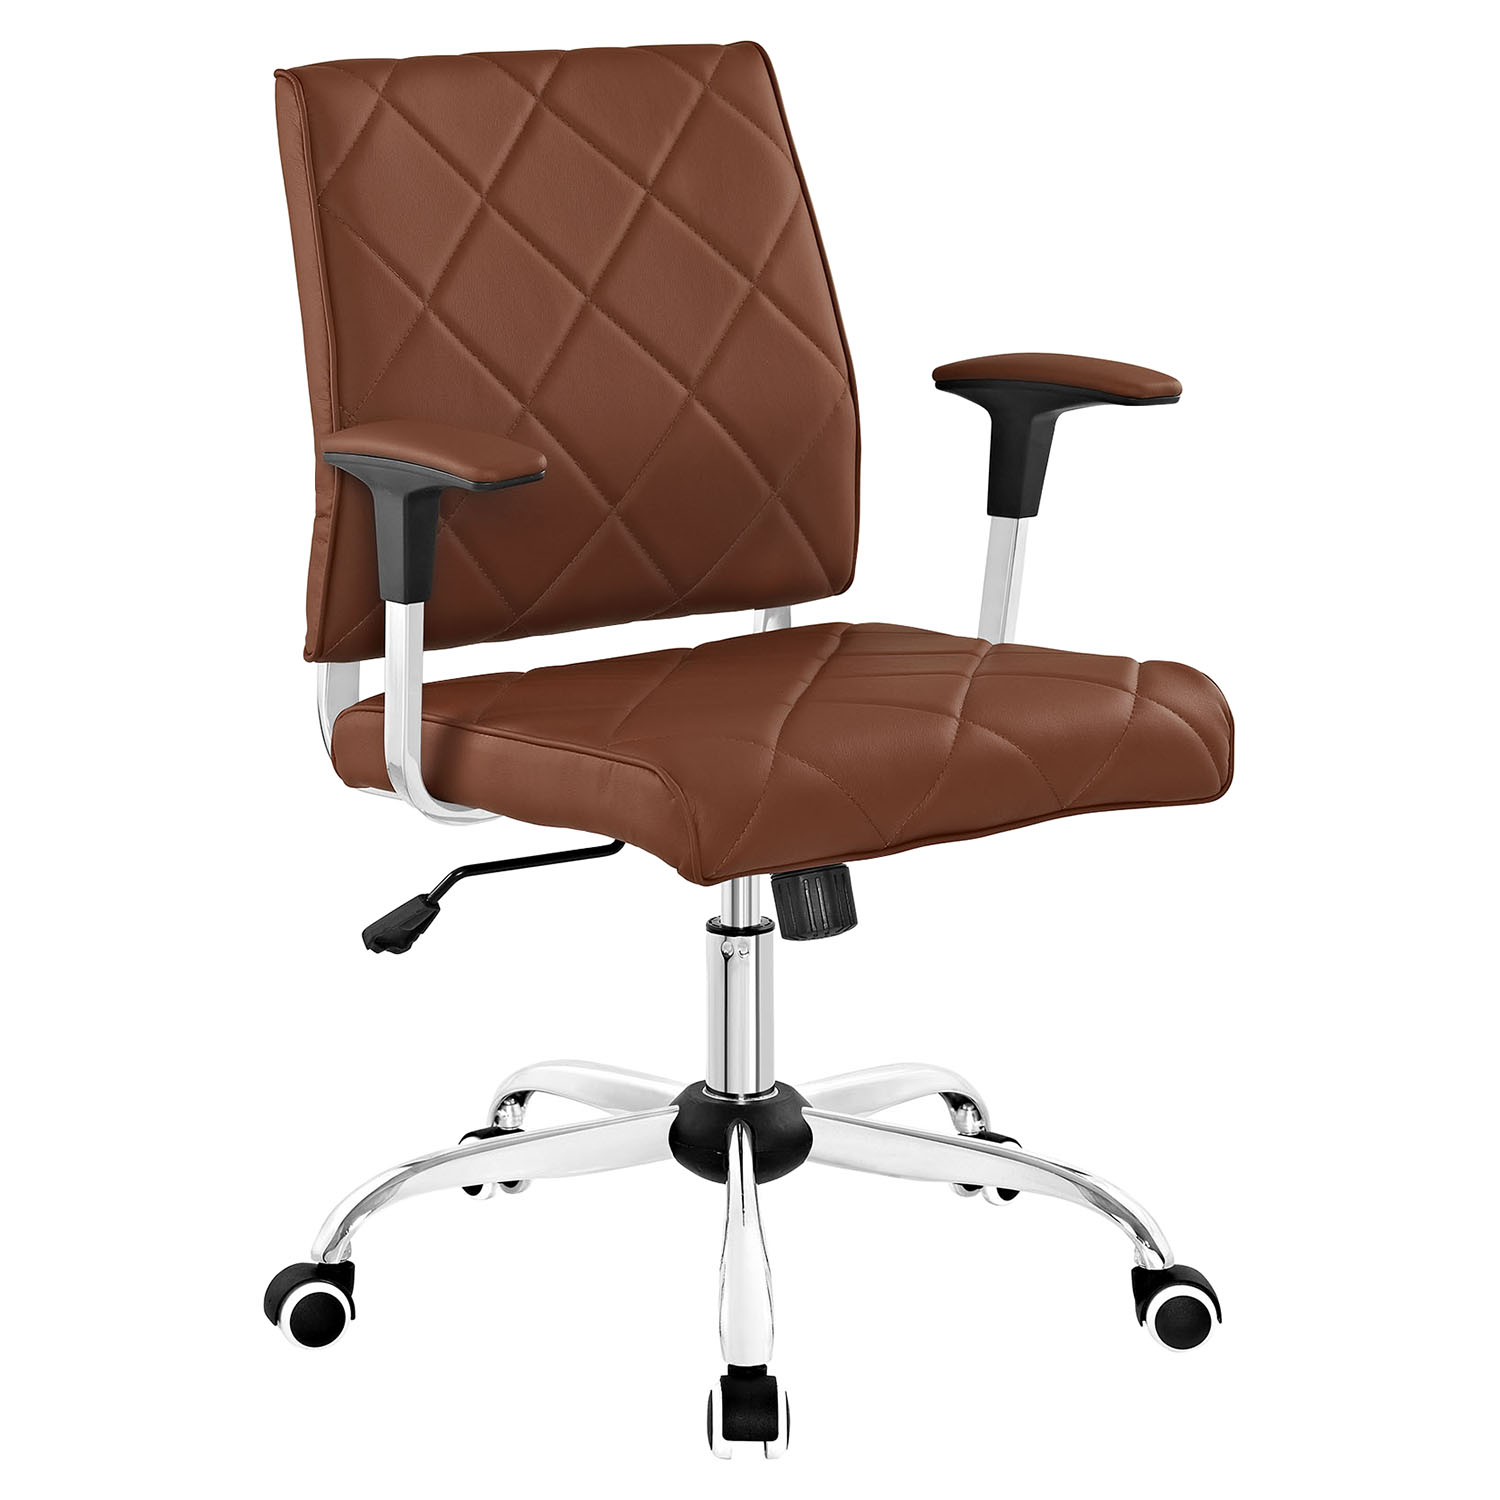 Lattice Leatherette Office Chair - Adjustable Height, Swivel, Armrest - EEI-1247